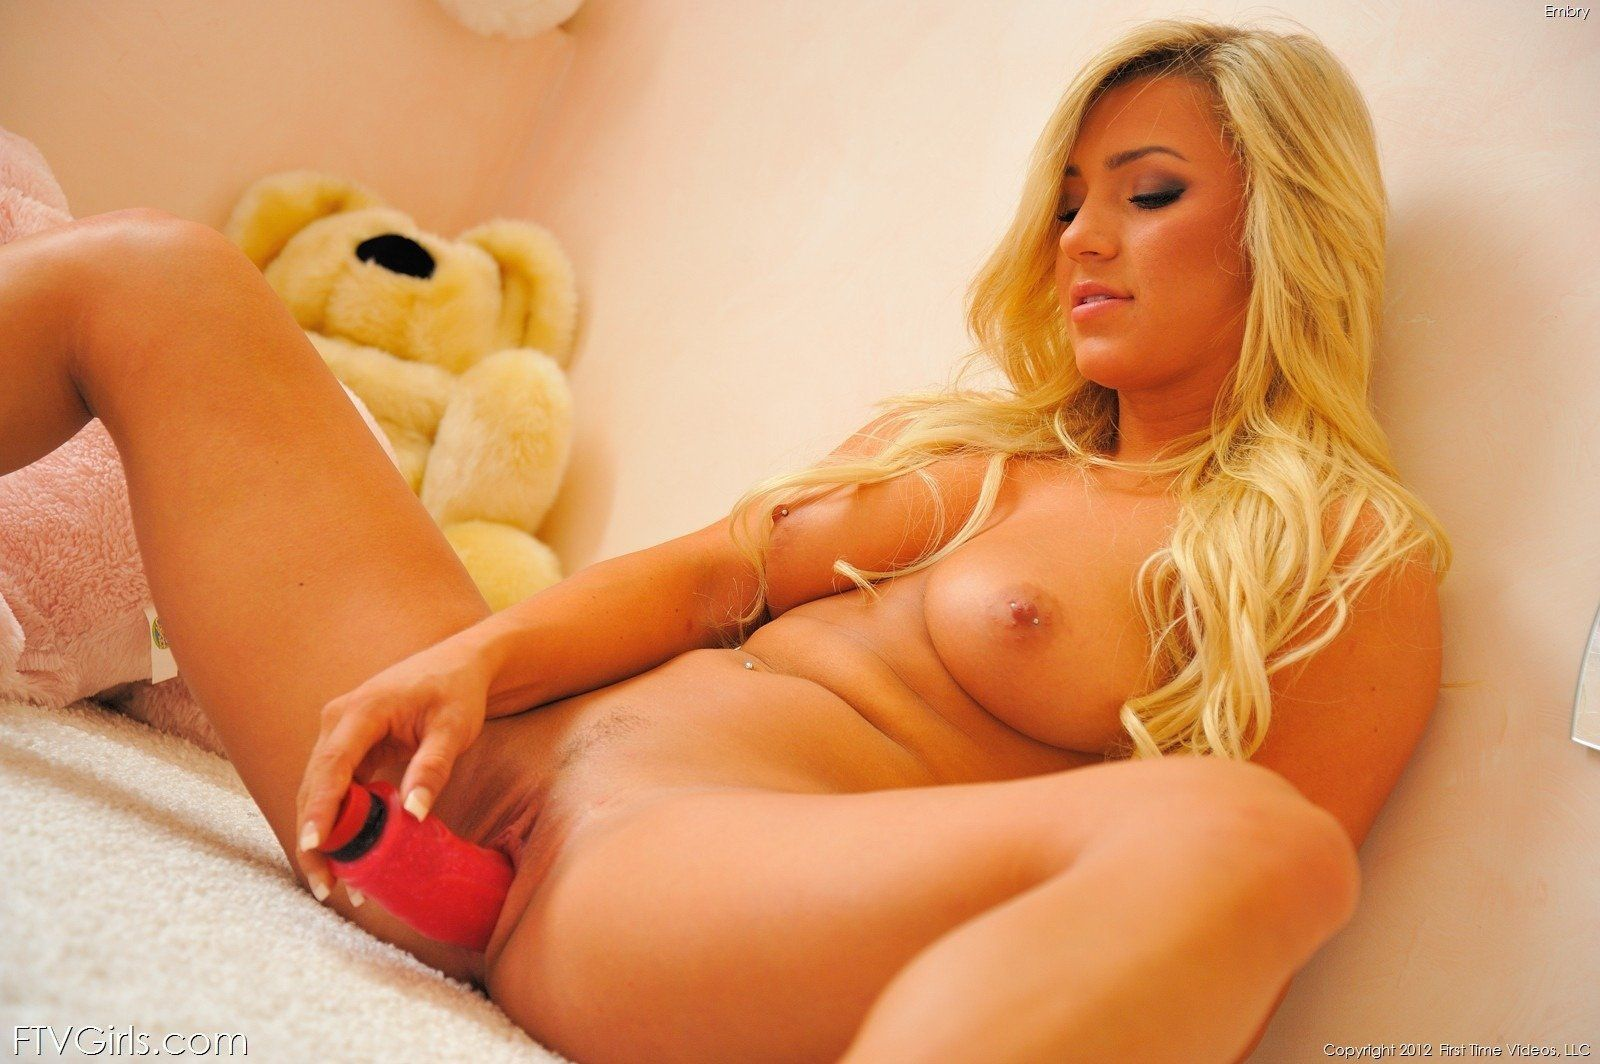 Sexy girl getting naked and using dildo